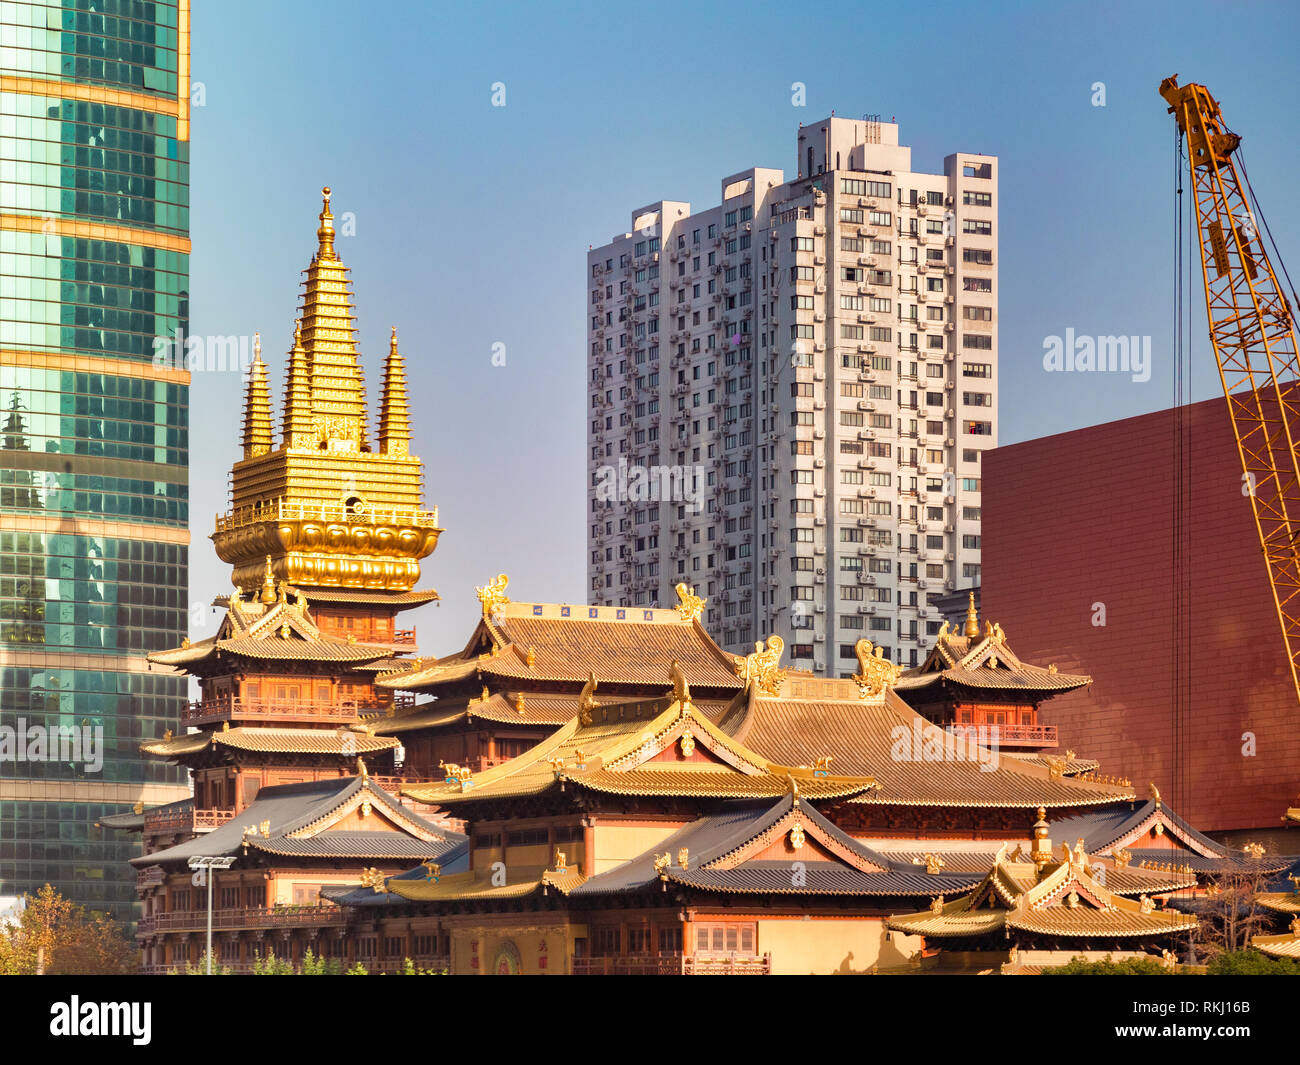 Jing'an Buddhist Temple in Shanghai, China, surrounded by modern high-rise buildings. - Stock Image